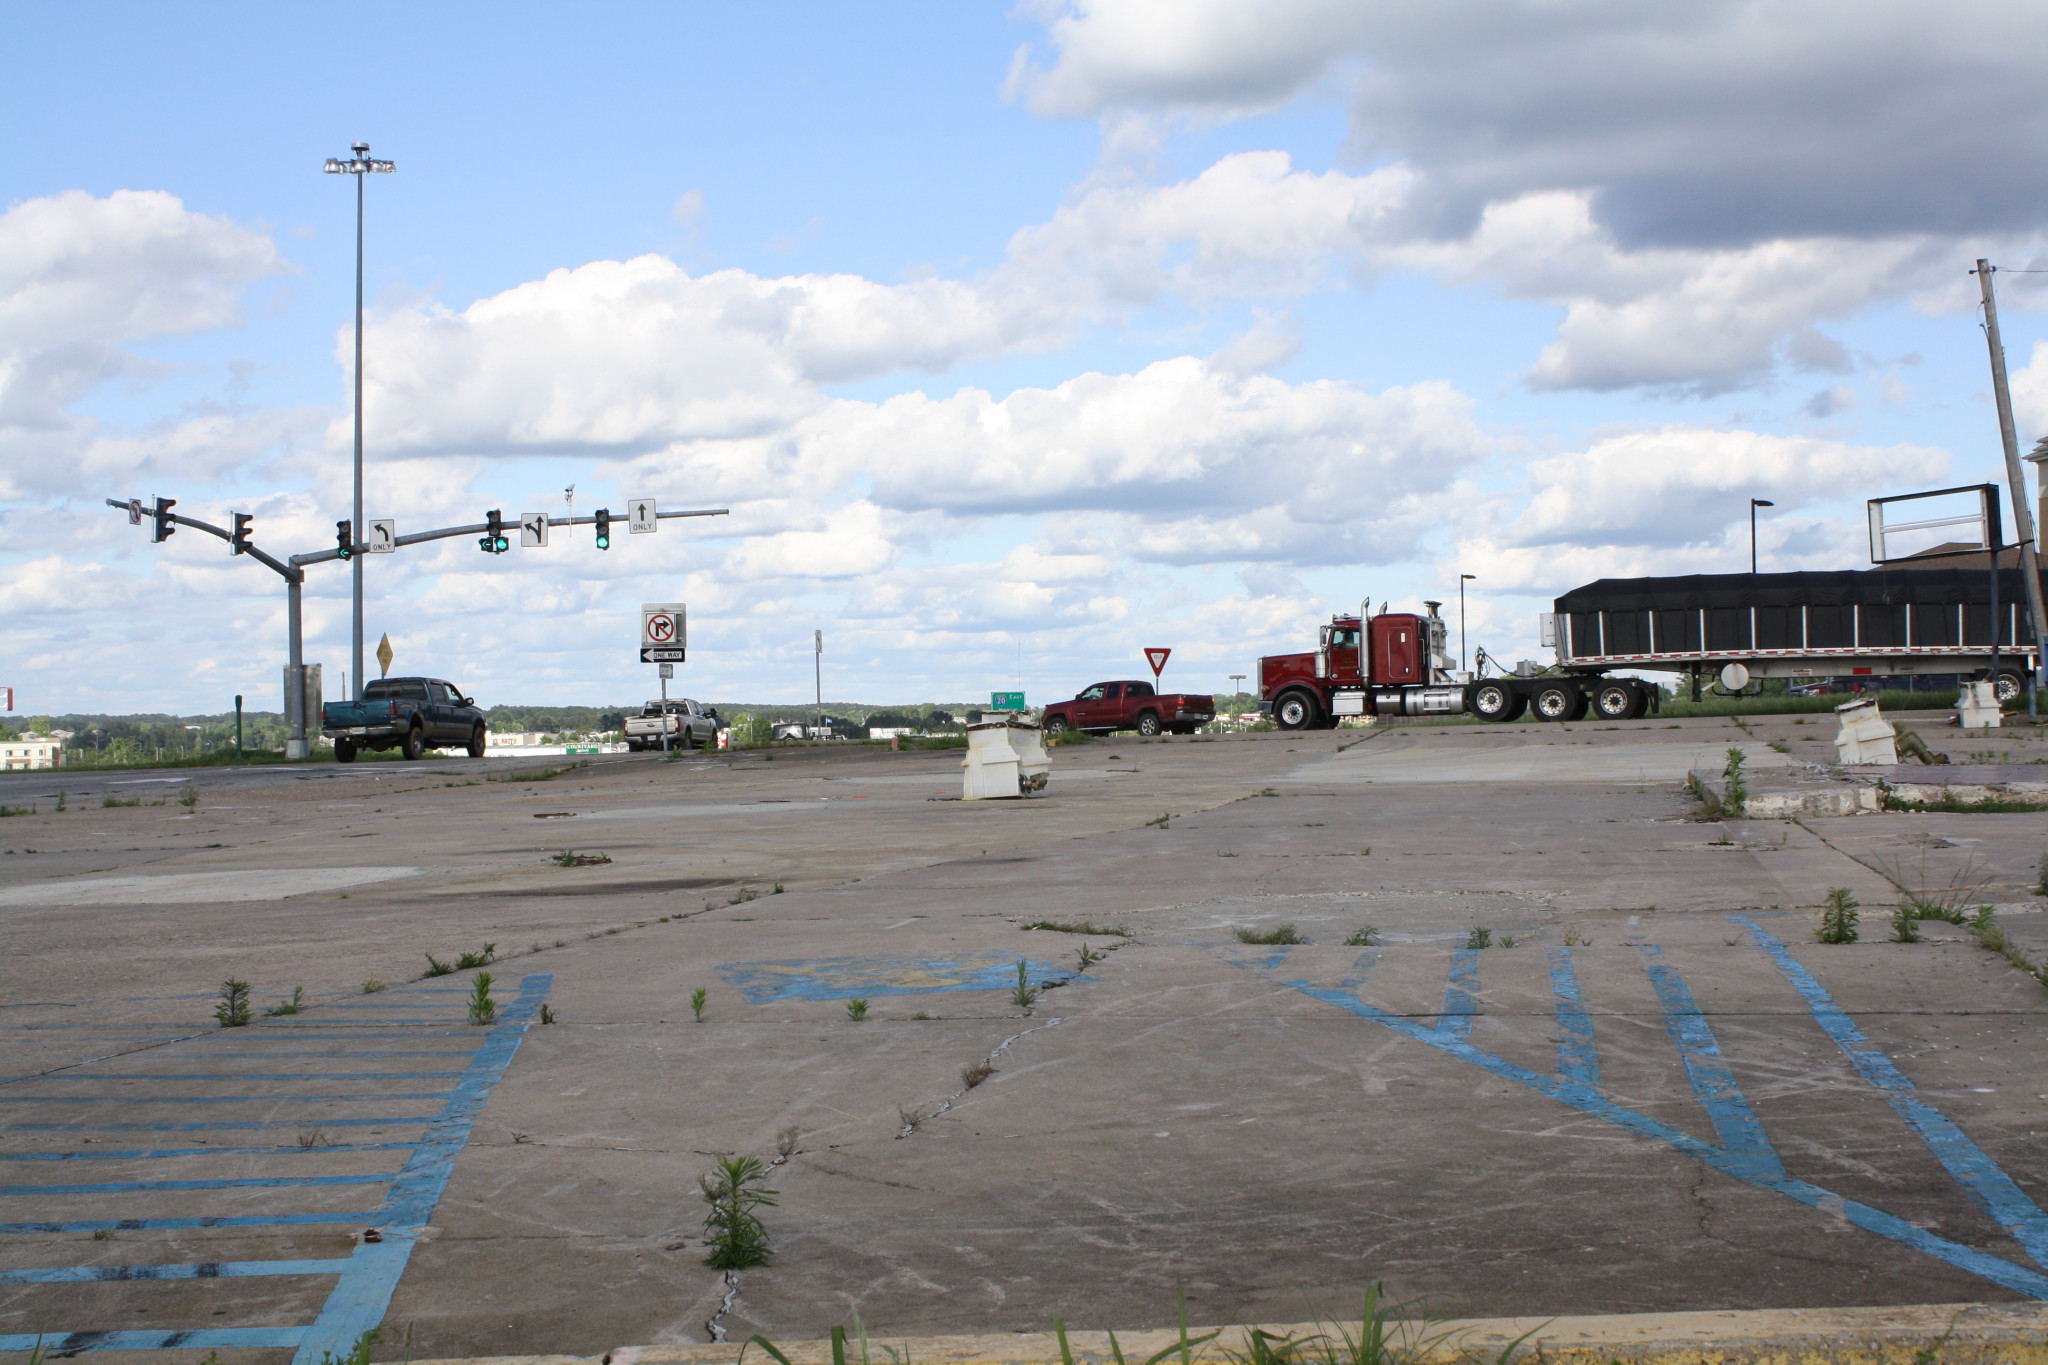 The current state of the empty lot where the Pow-Wow once stood.